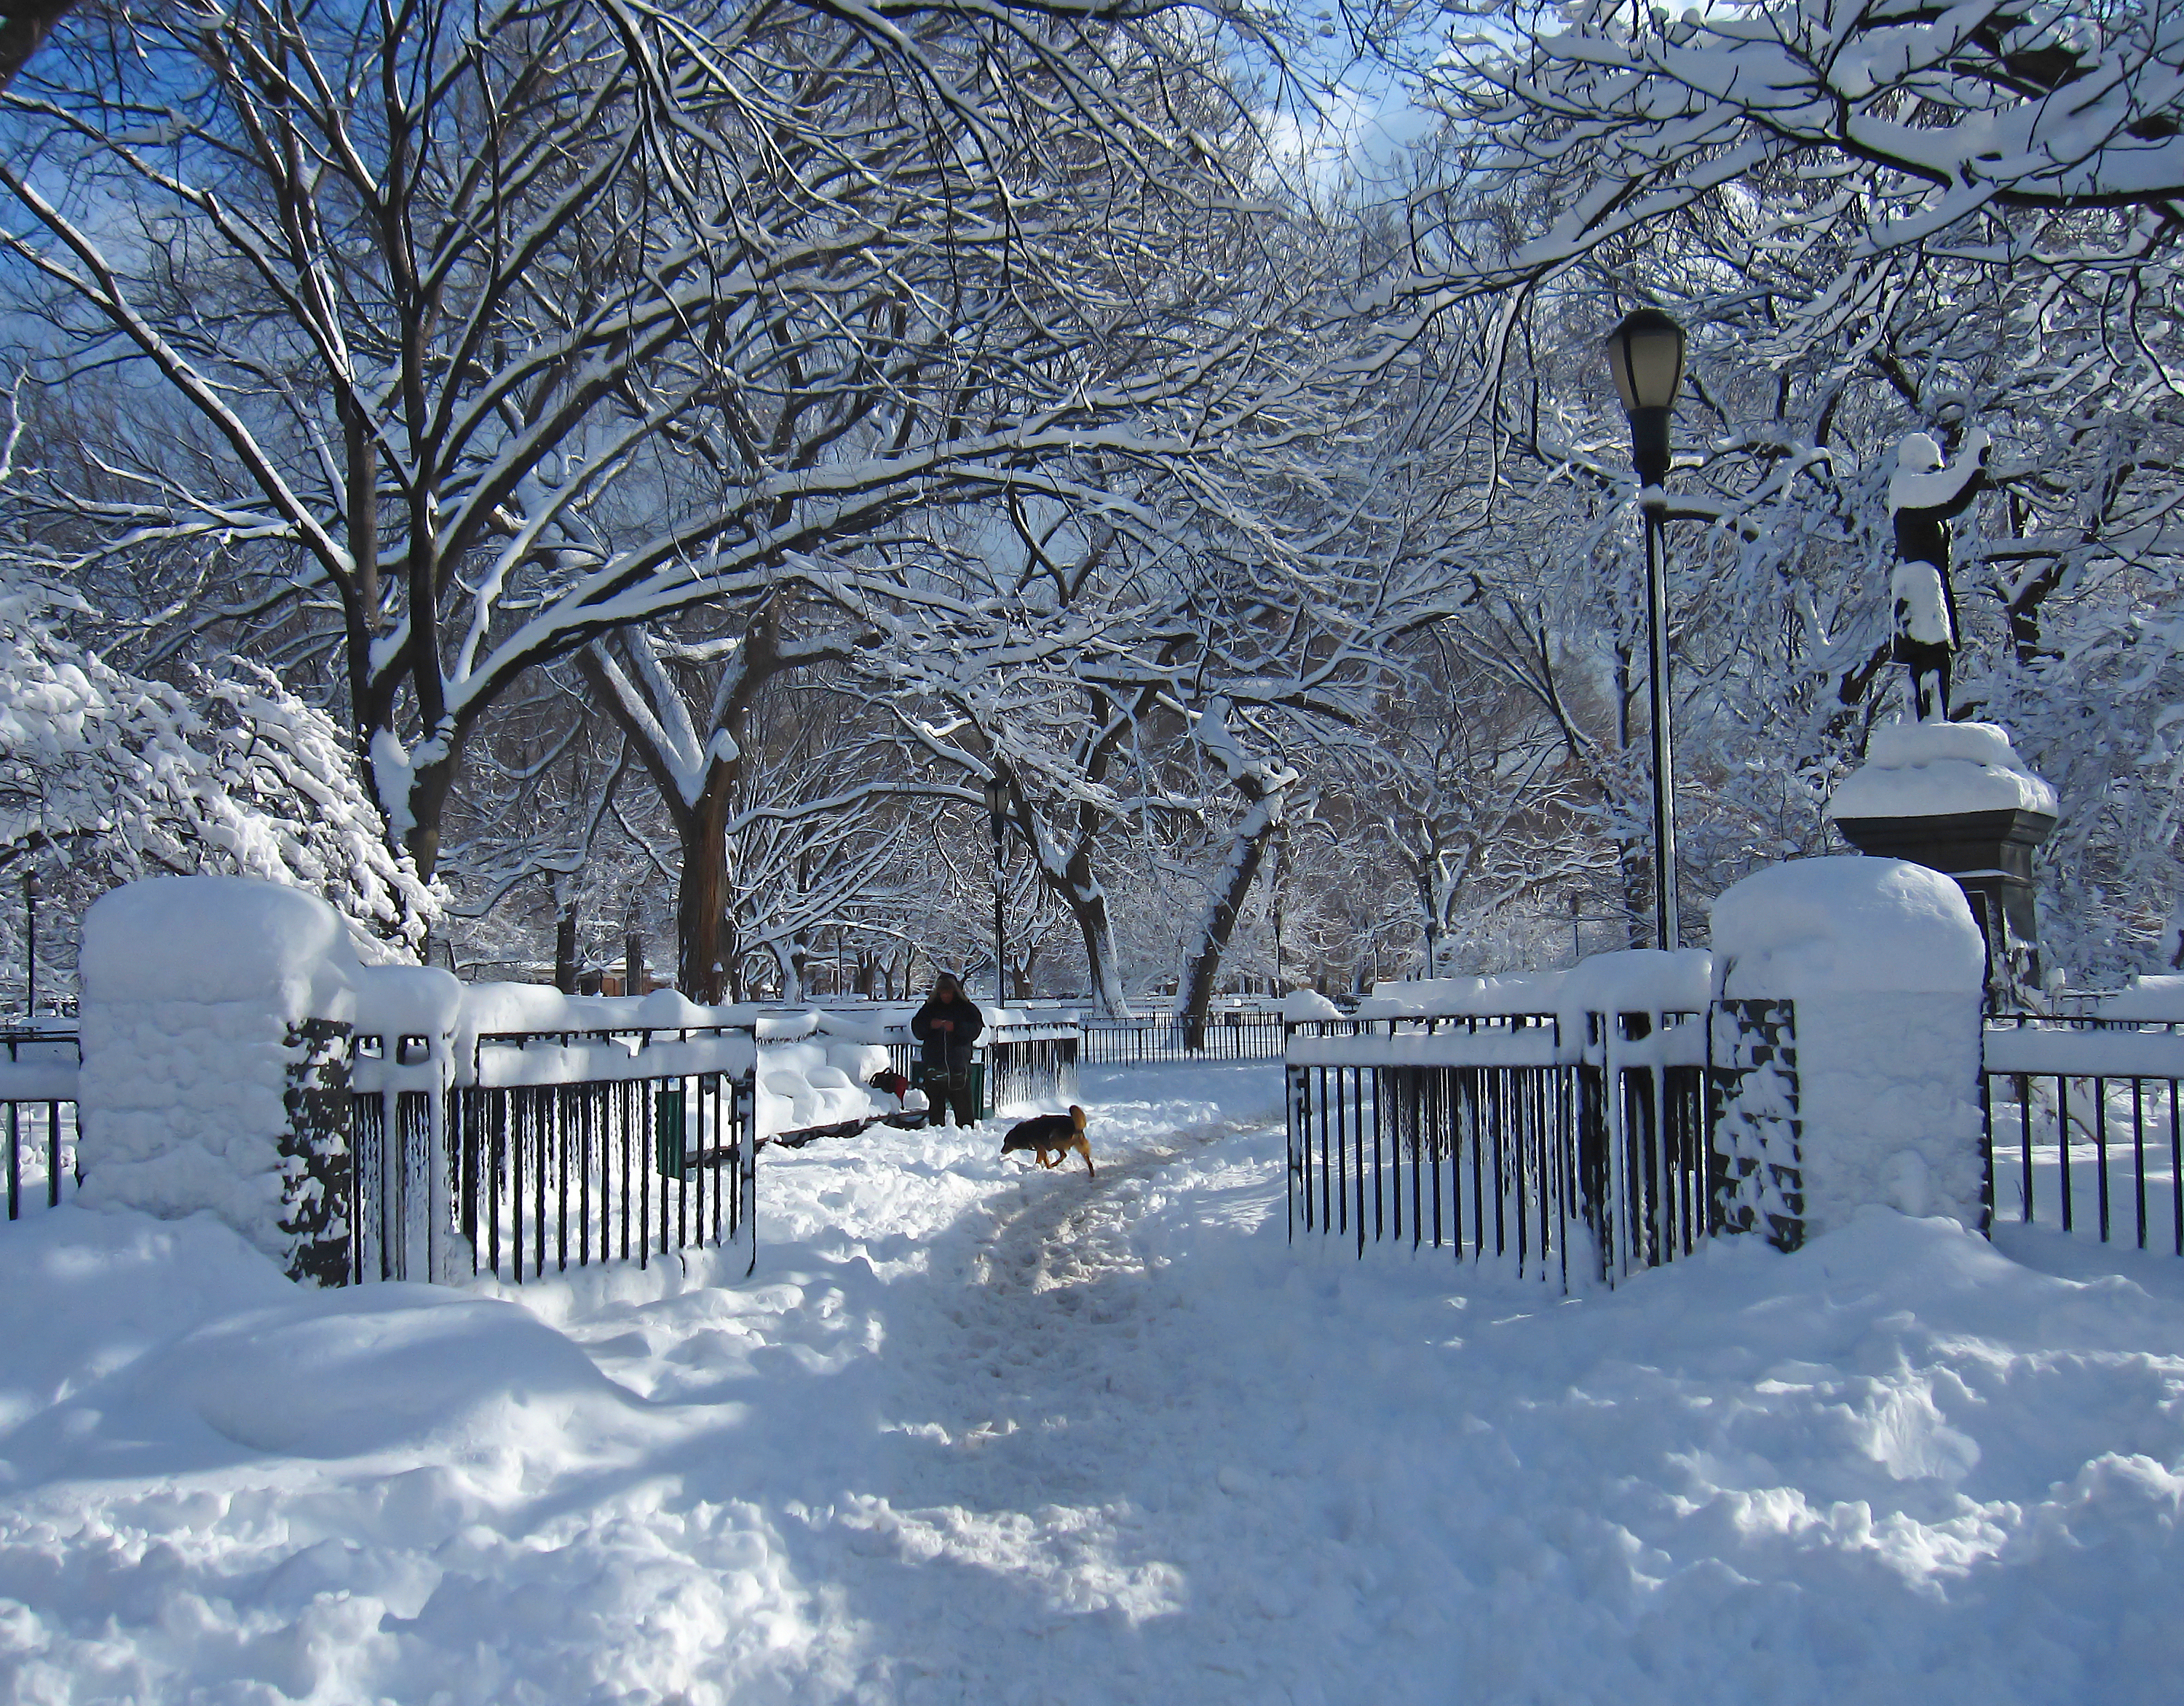 Entrance to Tompkins Square Park